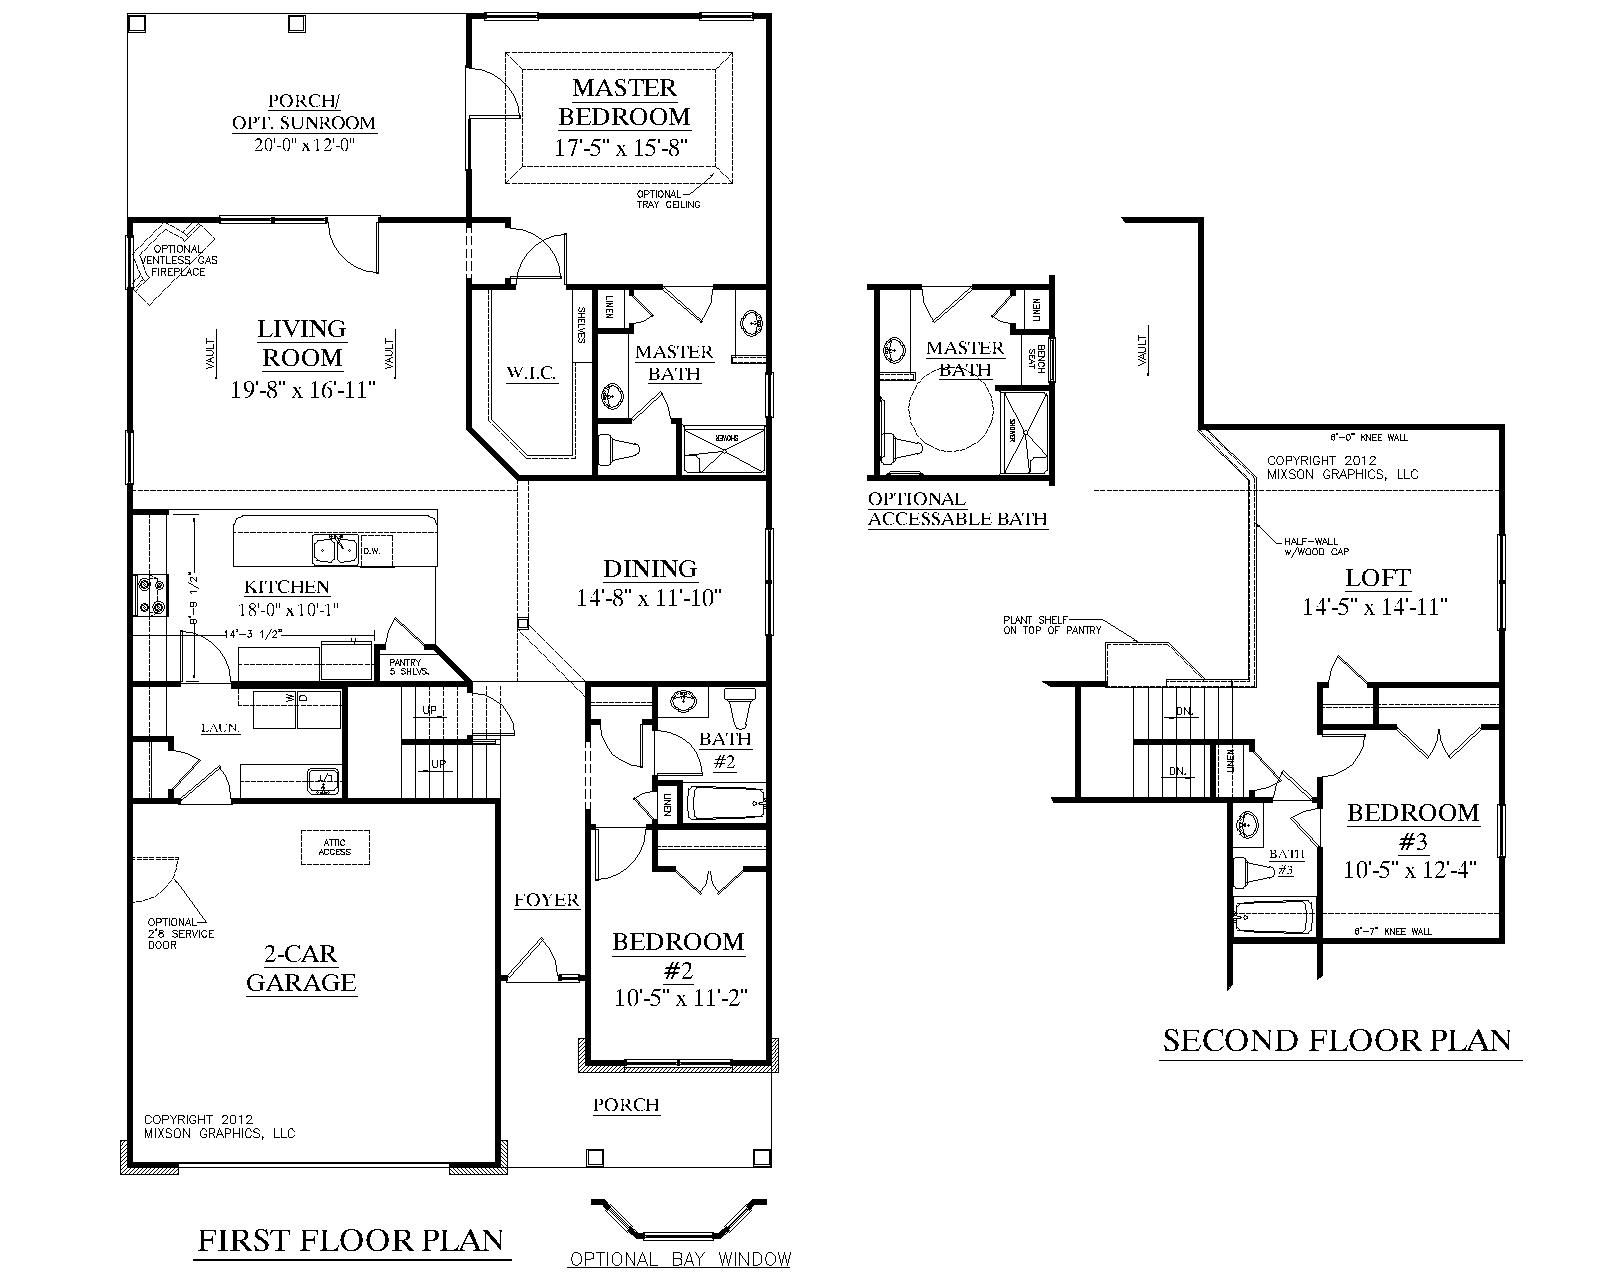 House plan 2224 kingstree floor plan traditional 1 1 2 for 1 floor home plans